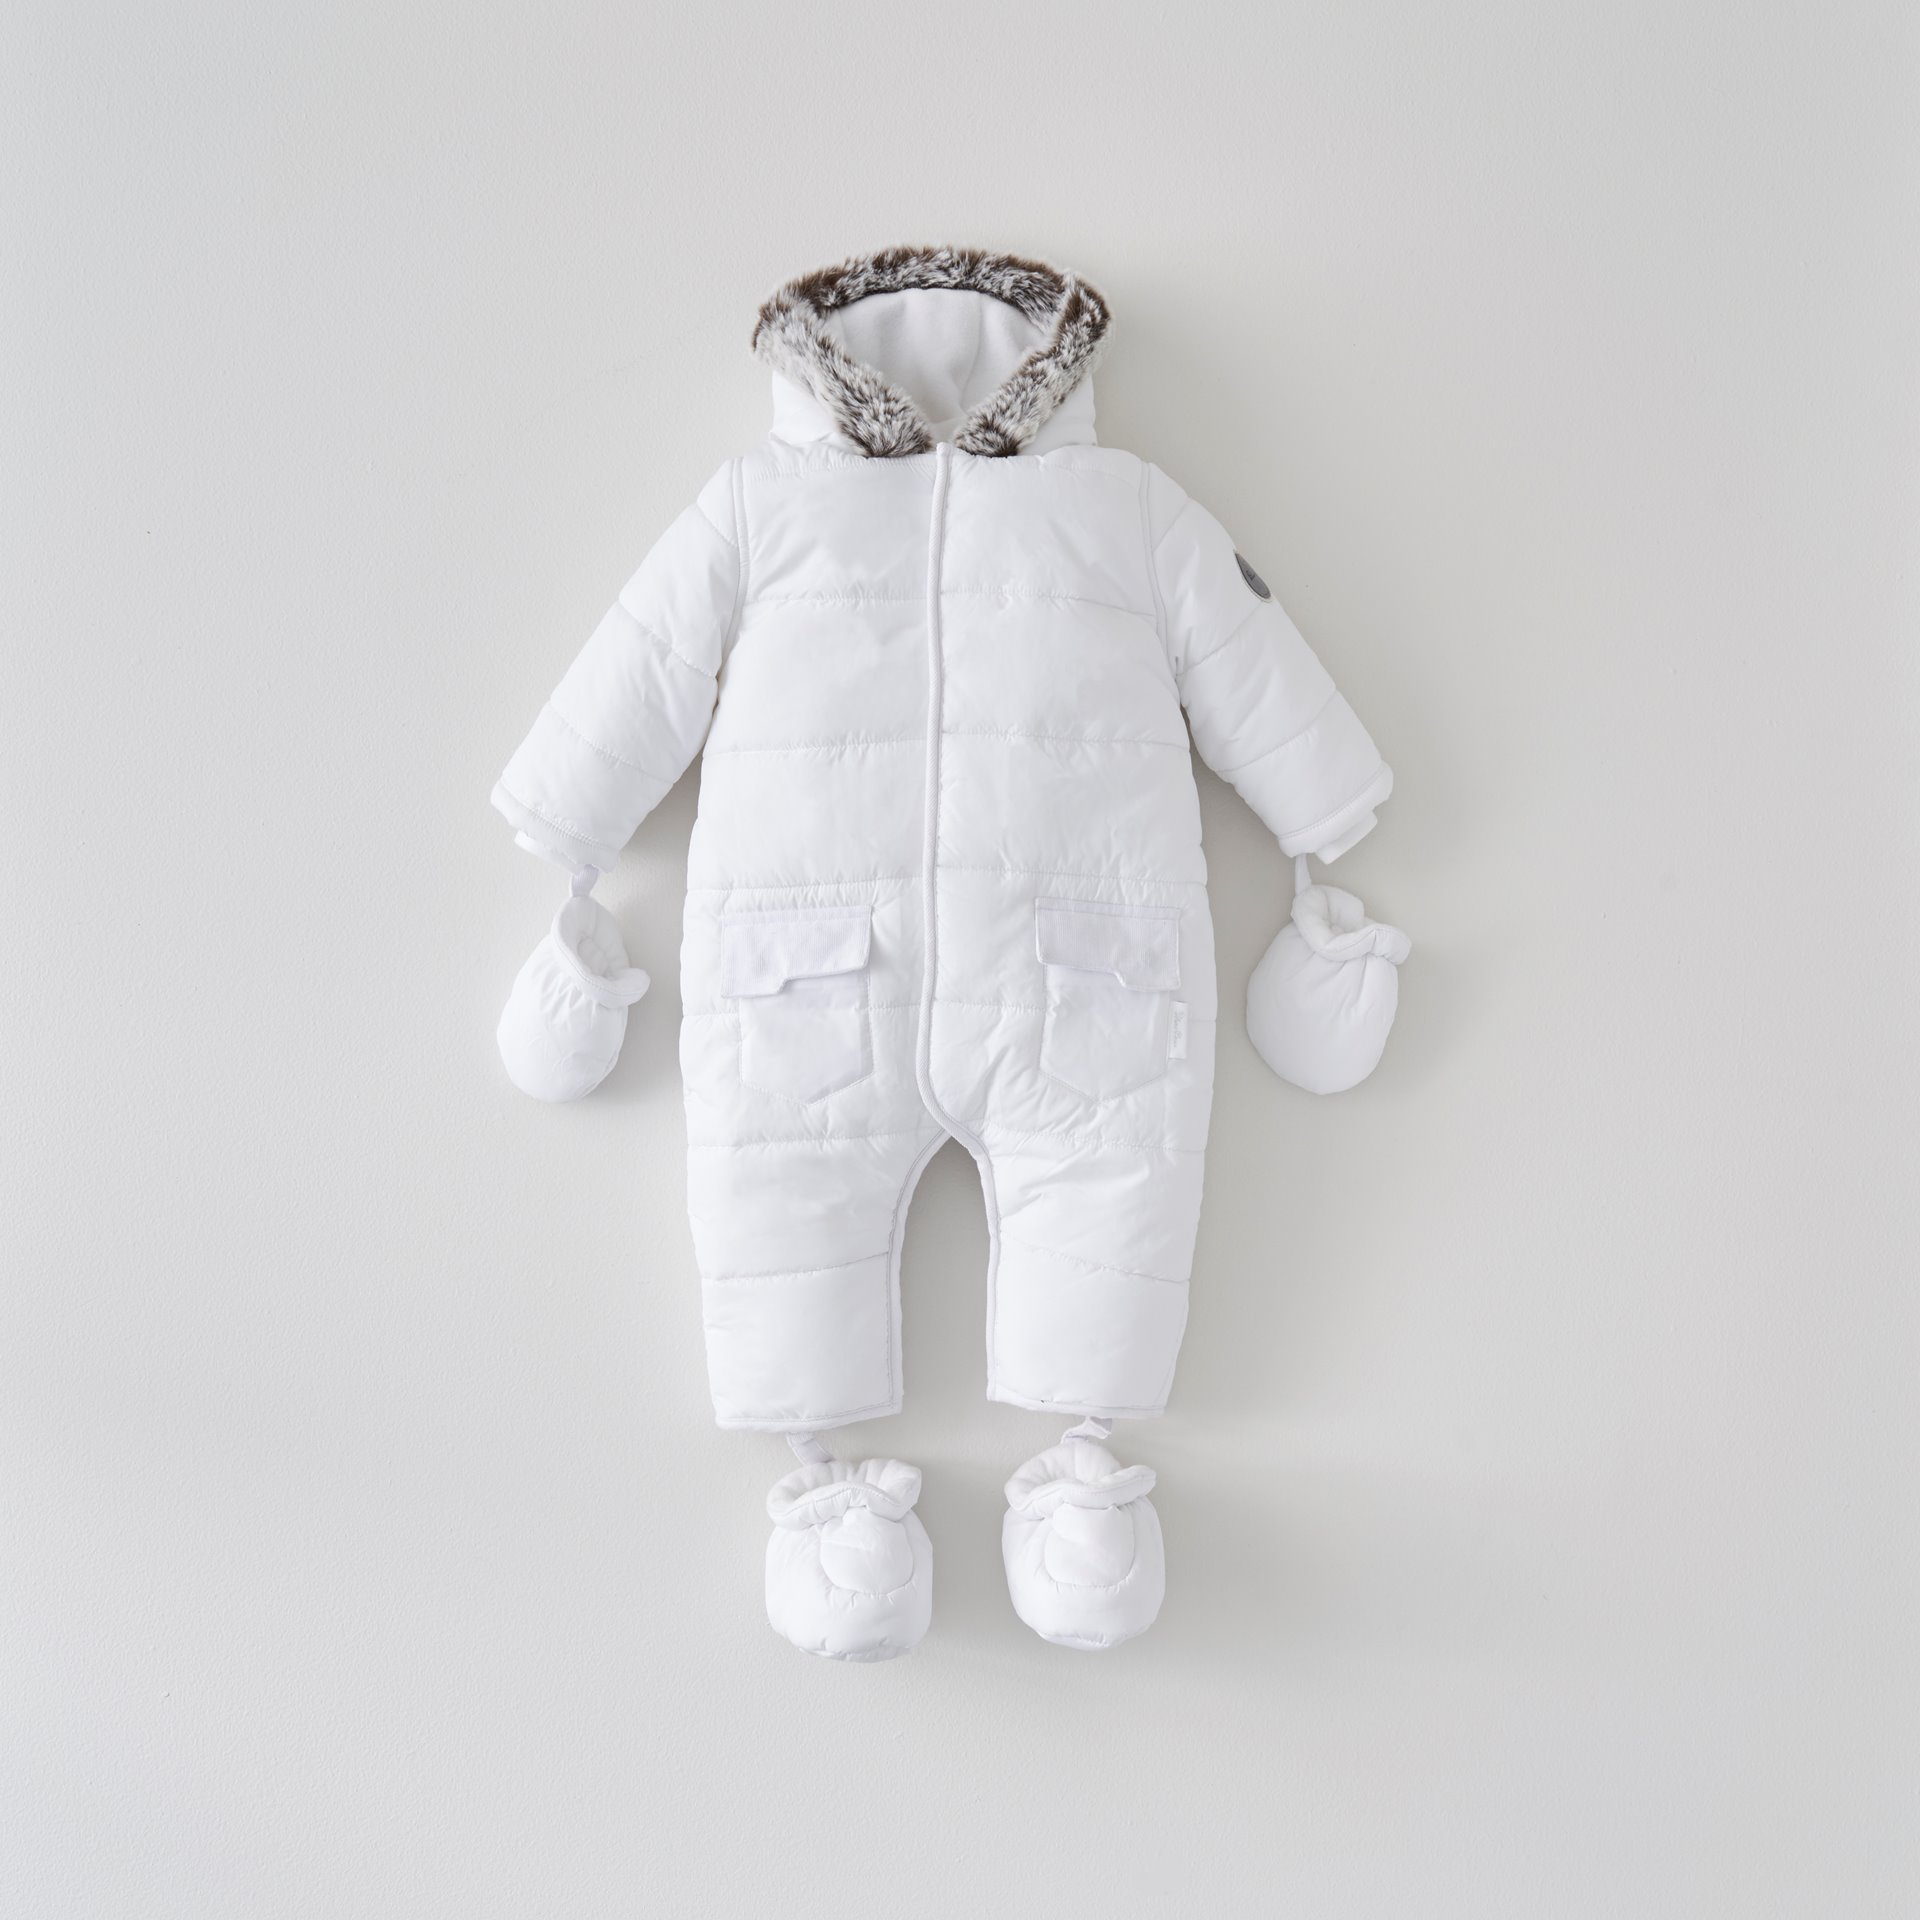 White Quilted Pramsuit 3-6 Months